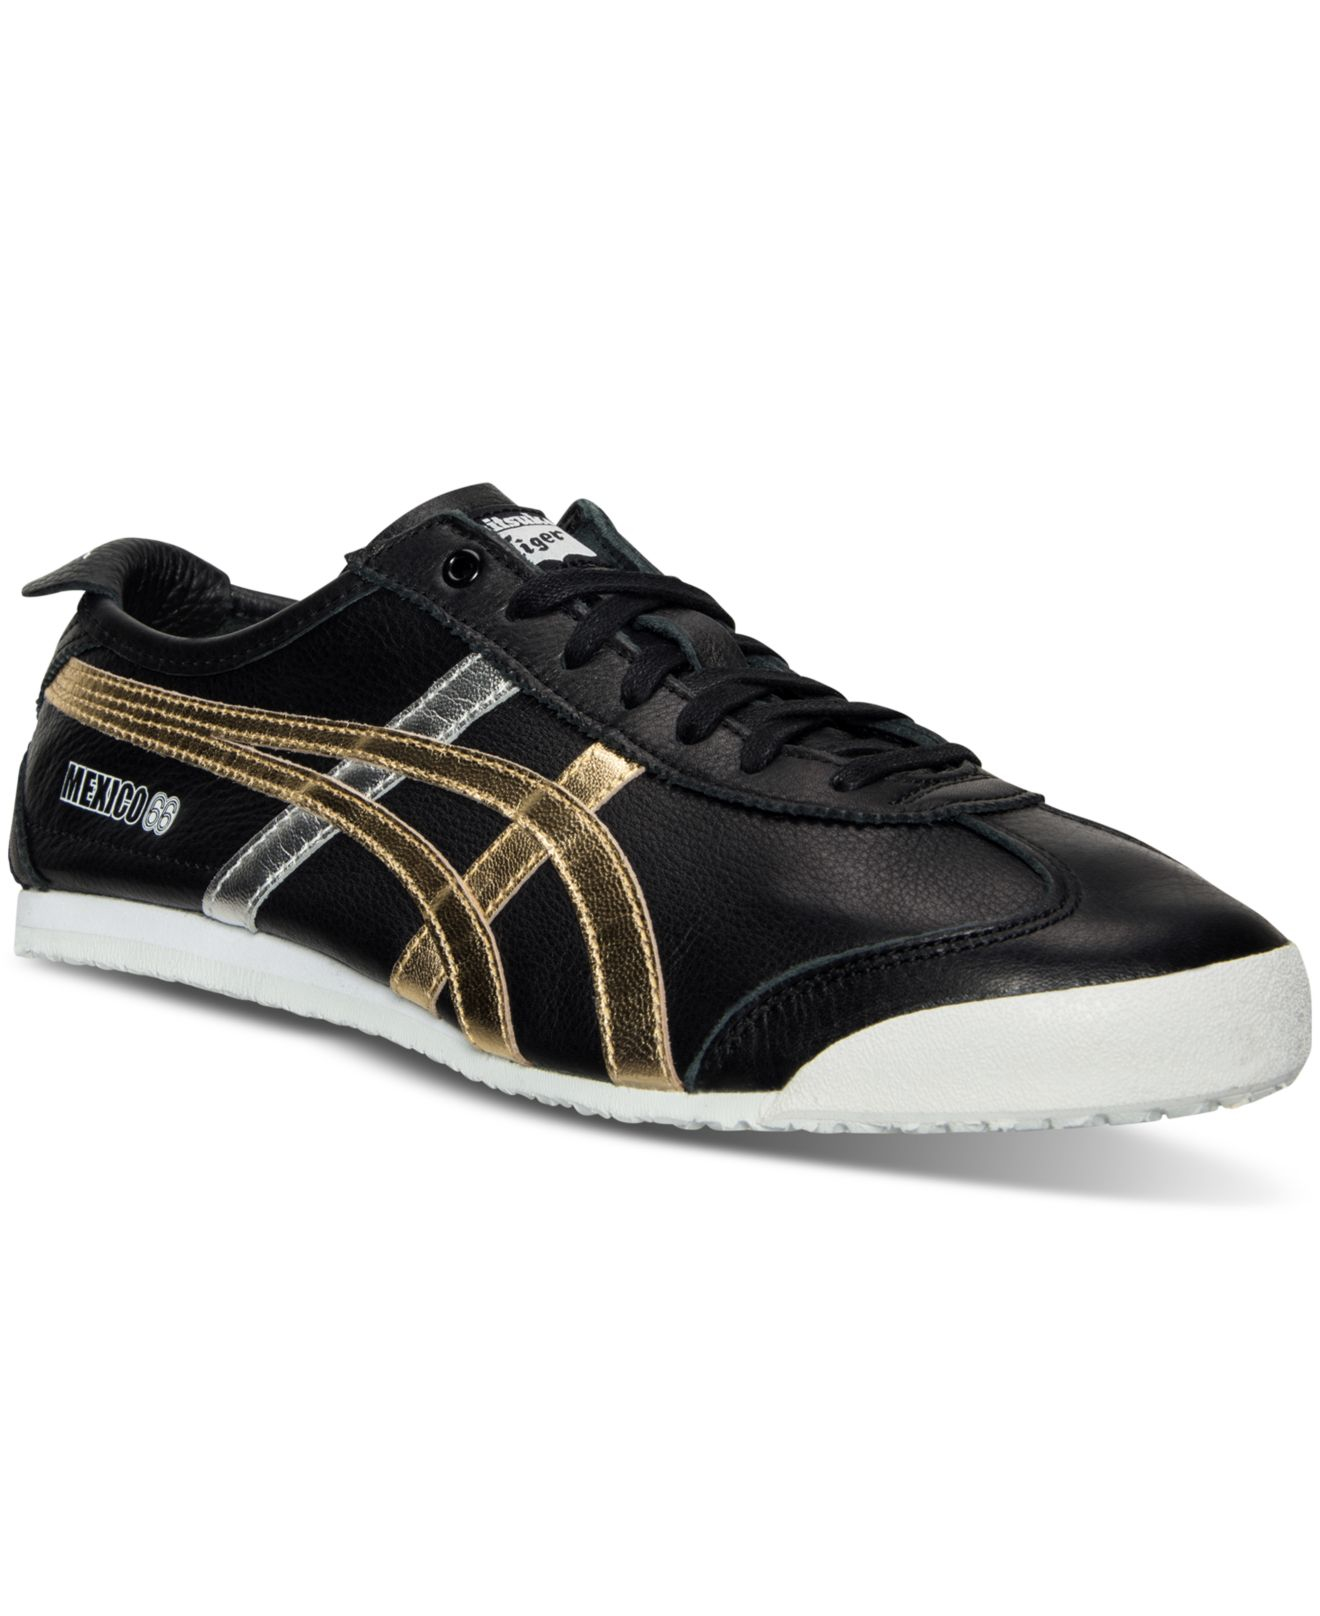 gold silver mens asics onitsuka tiger mexico 66 shoes. Black Bedroom Furniture Sets. Home Design Ideas